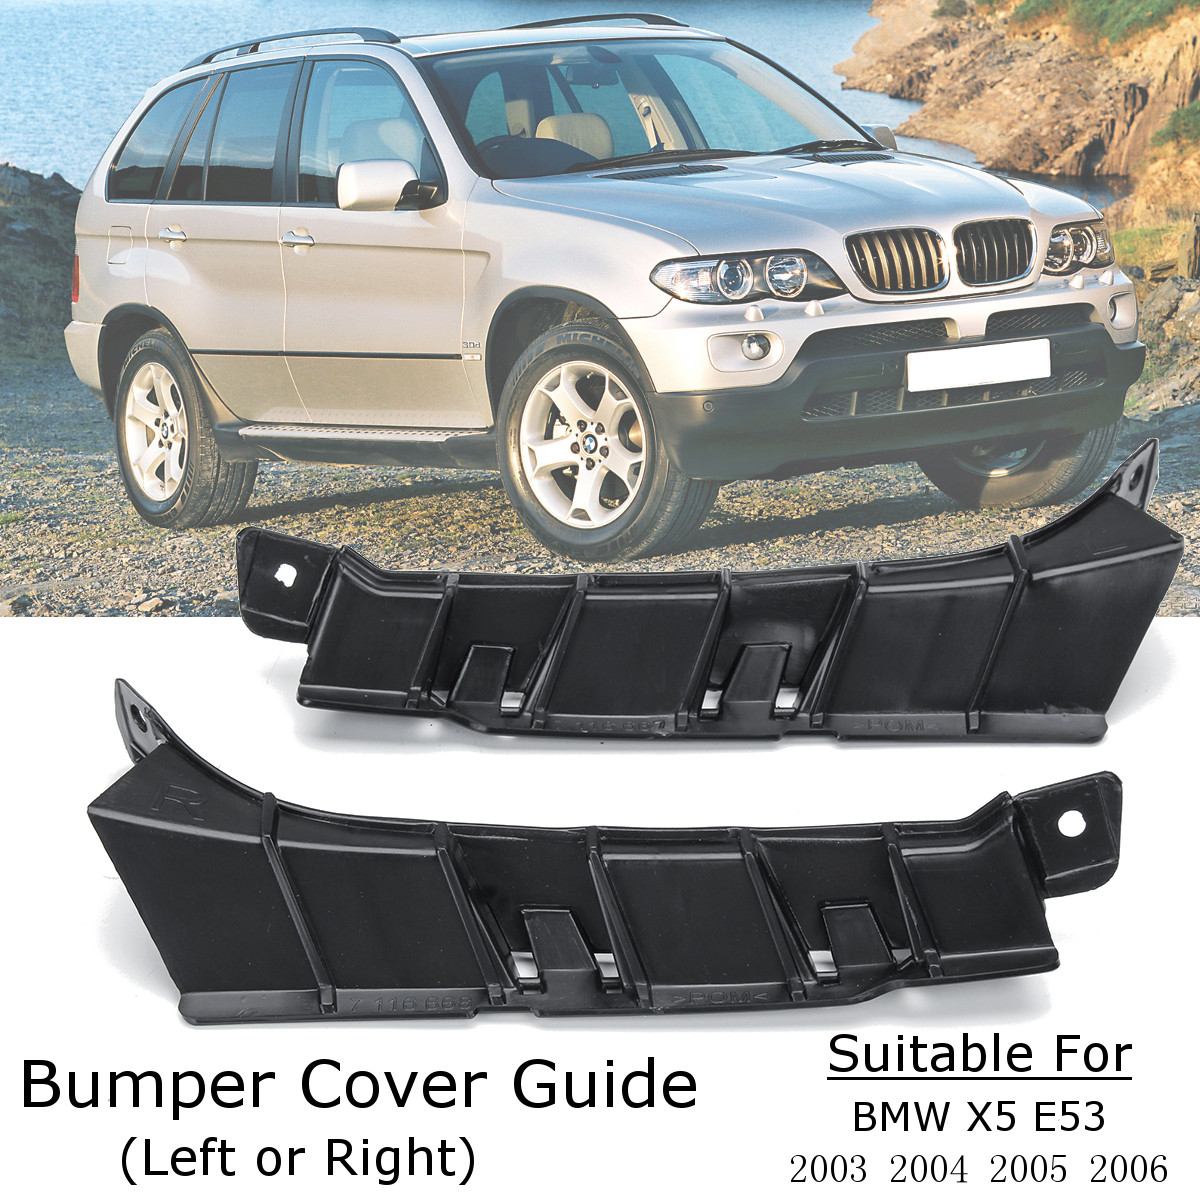 Front Right side Bumper Cover Guide for BMW X5 E53 51117116668